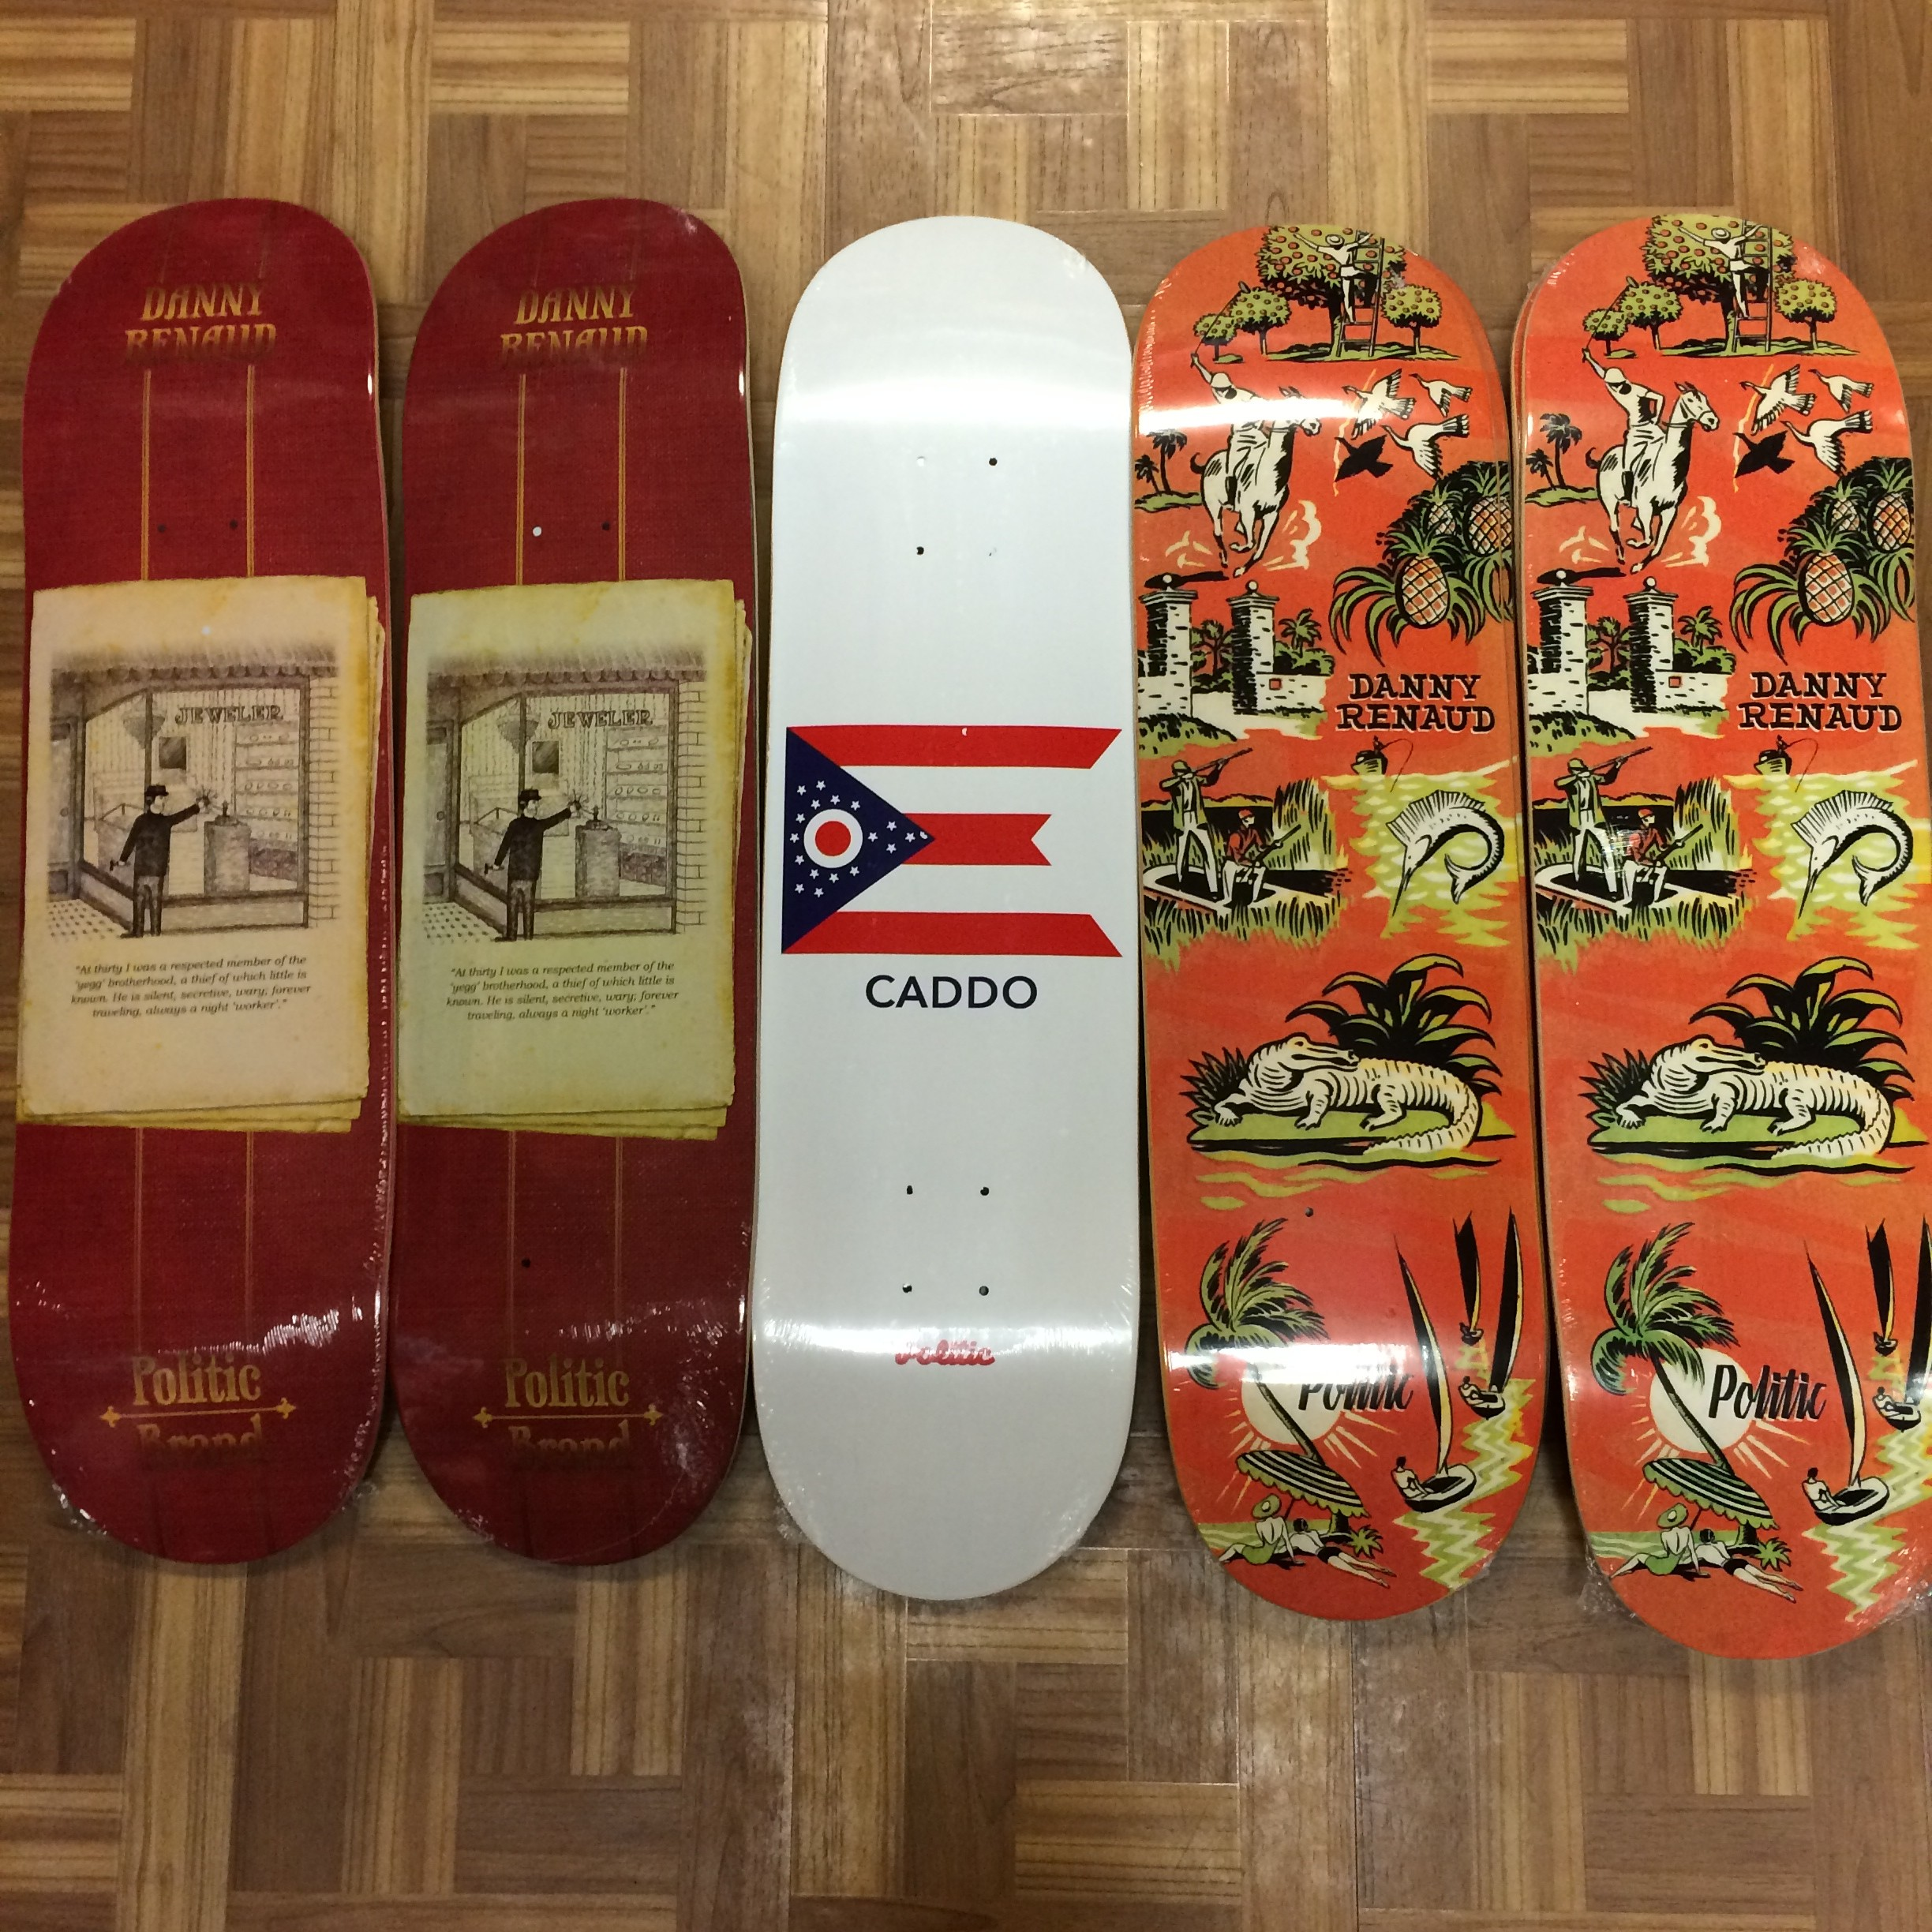 All New Decks From Politic   Scumco   sons Just Came In. Tons Of sizes  available. b7b66c666cc